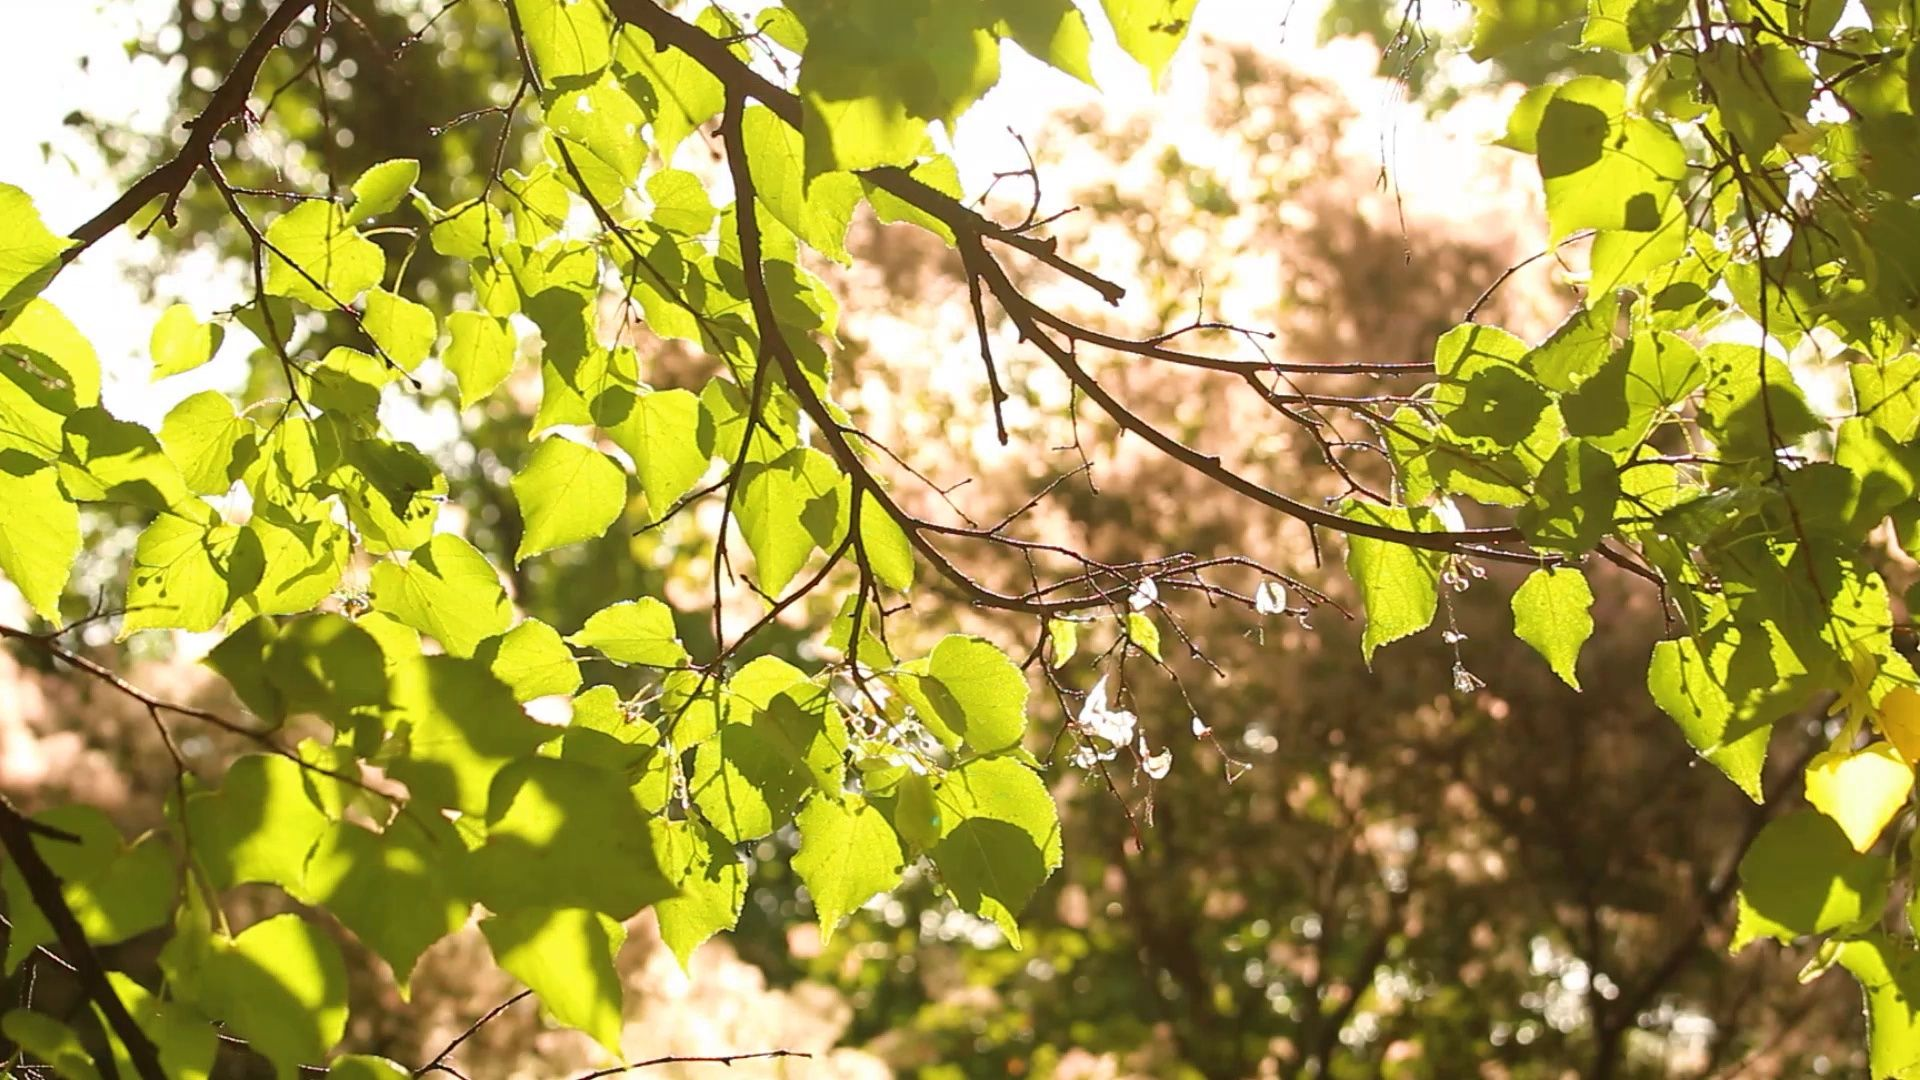 Beautiful green and brown nature foliage. Sun shines through green leaves  Stock Footage,#nature#foliage#brown#Beautiful | Foliage, Green leaves,  Summer trees